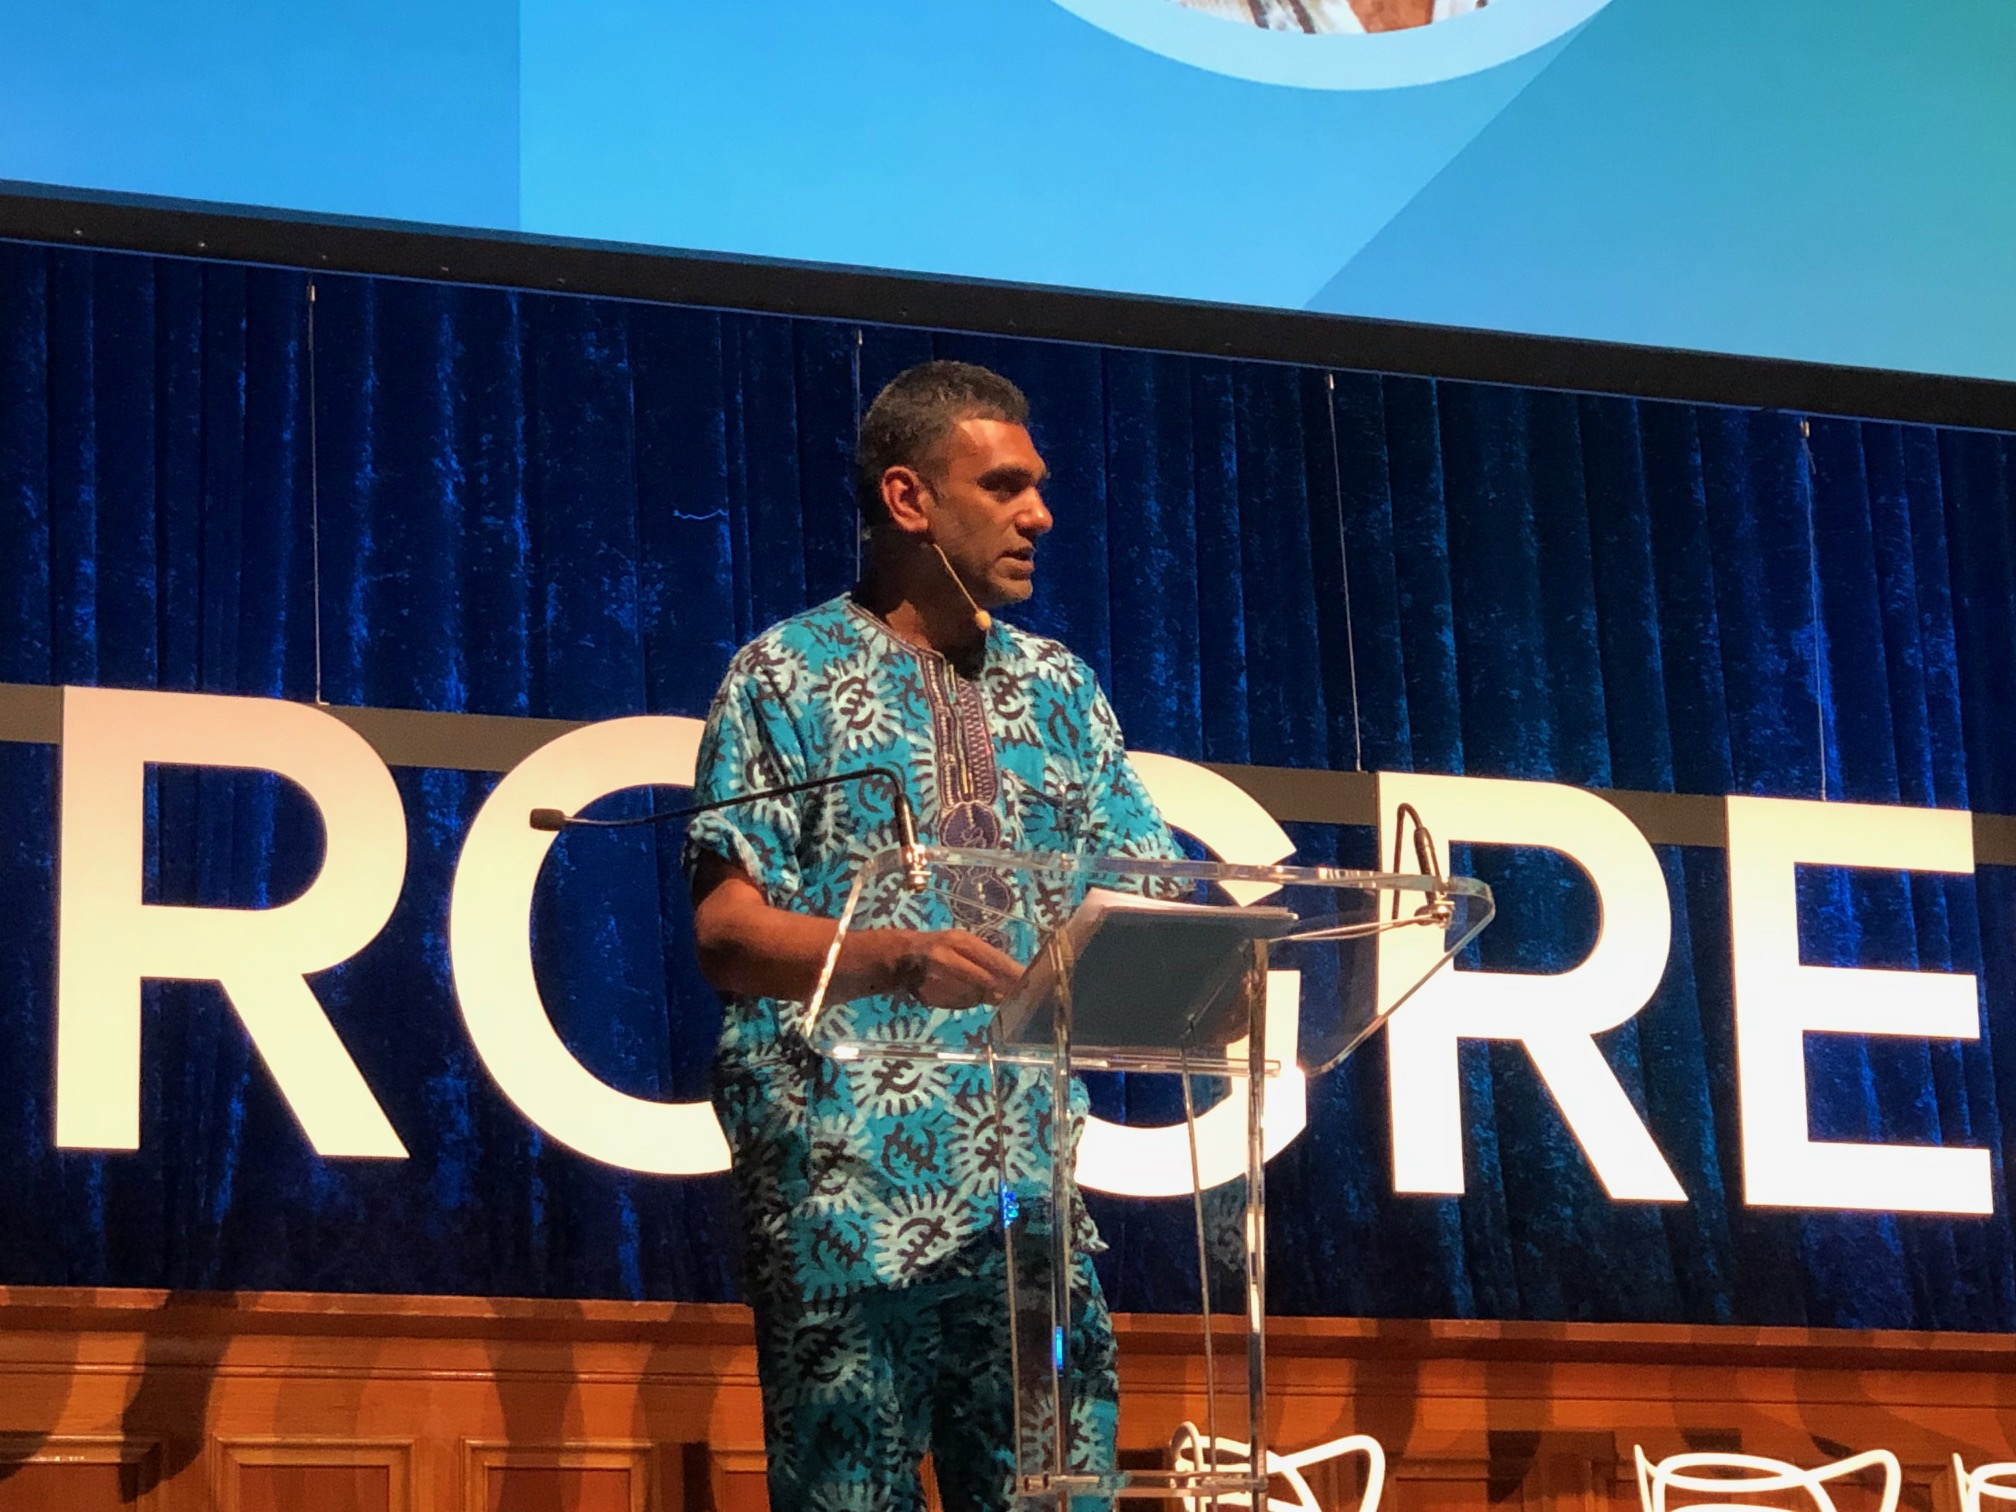 Dr Kumi Naidoo calls for moral courage and civil disobedience. Photograph by Mitchell Ward